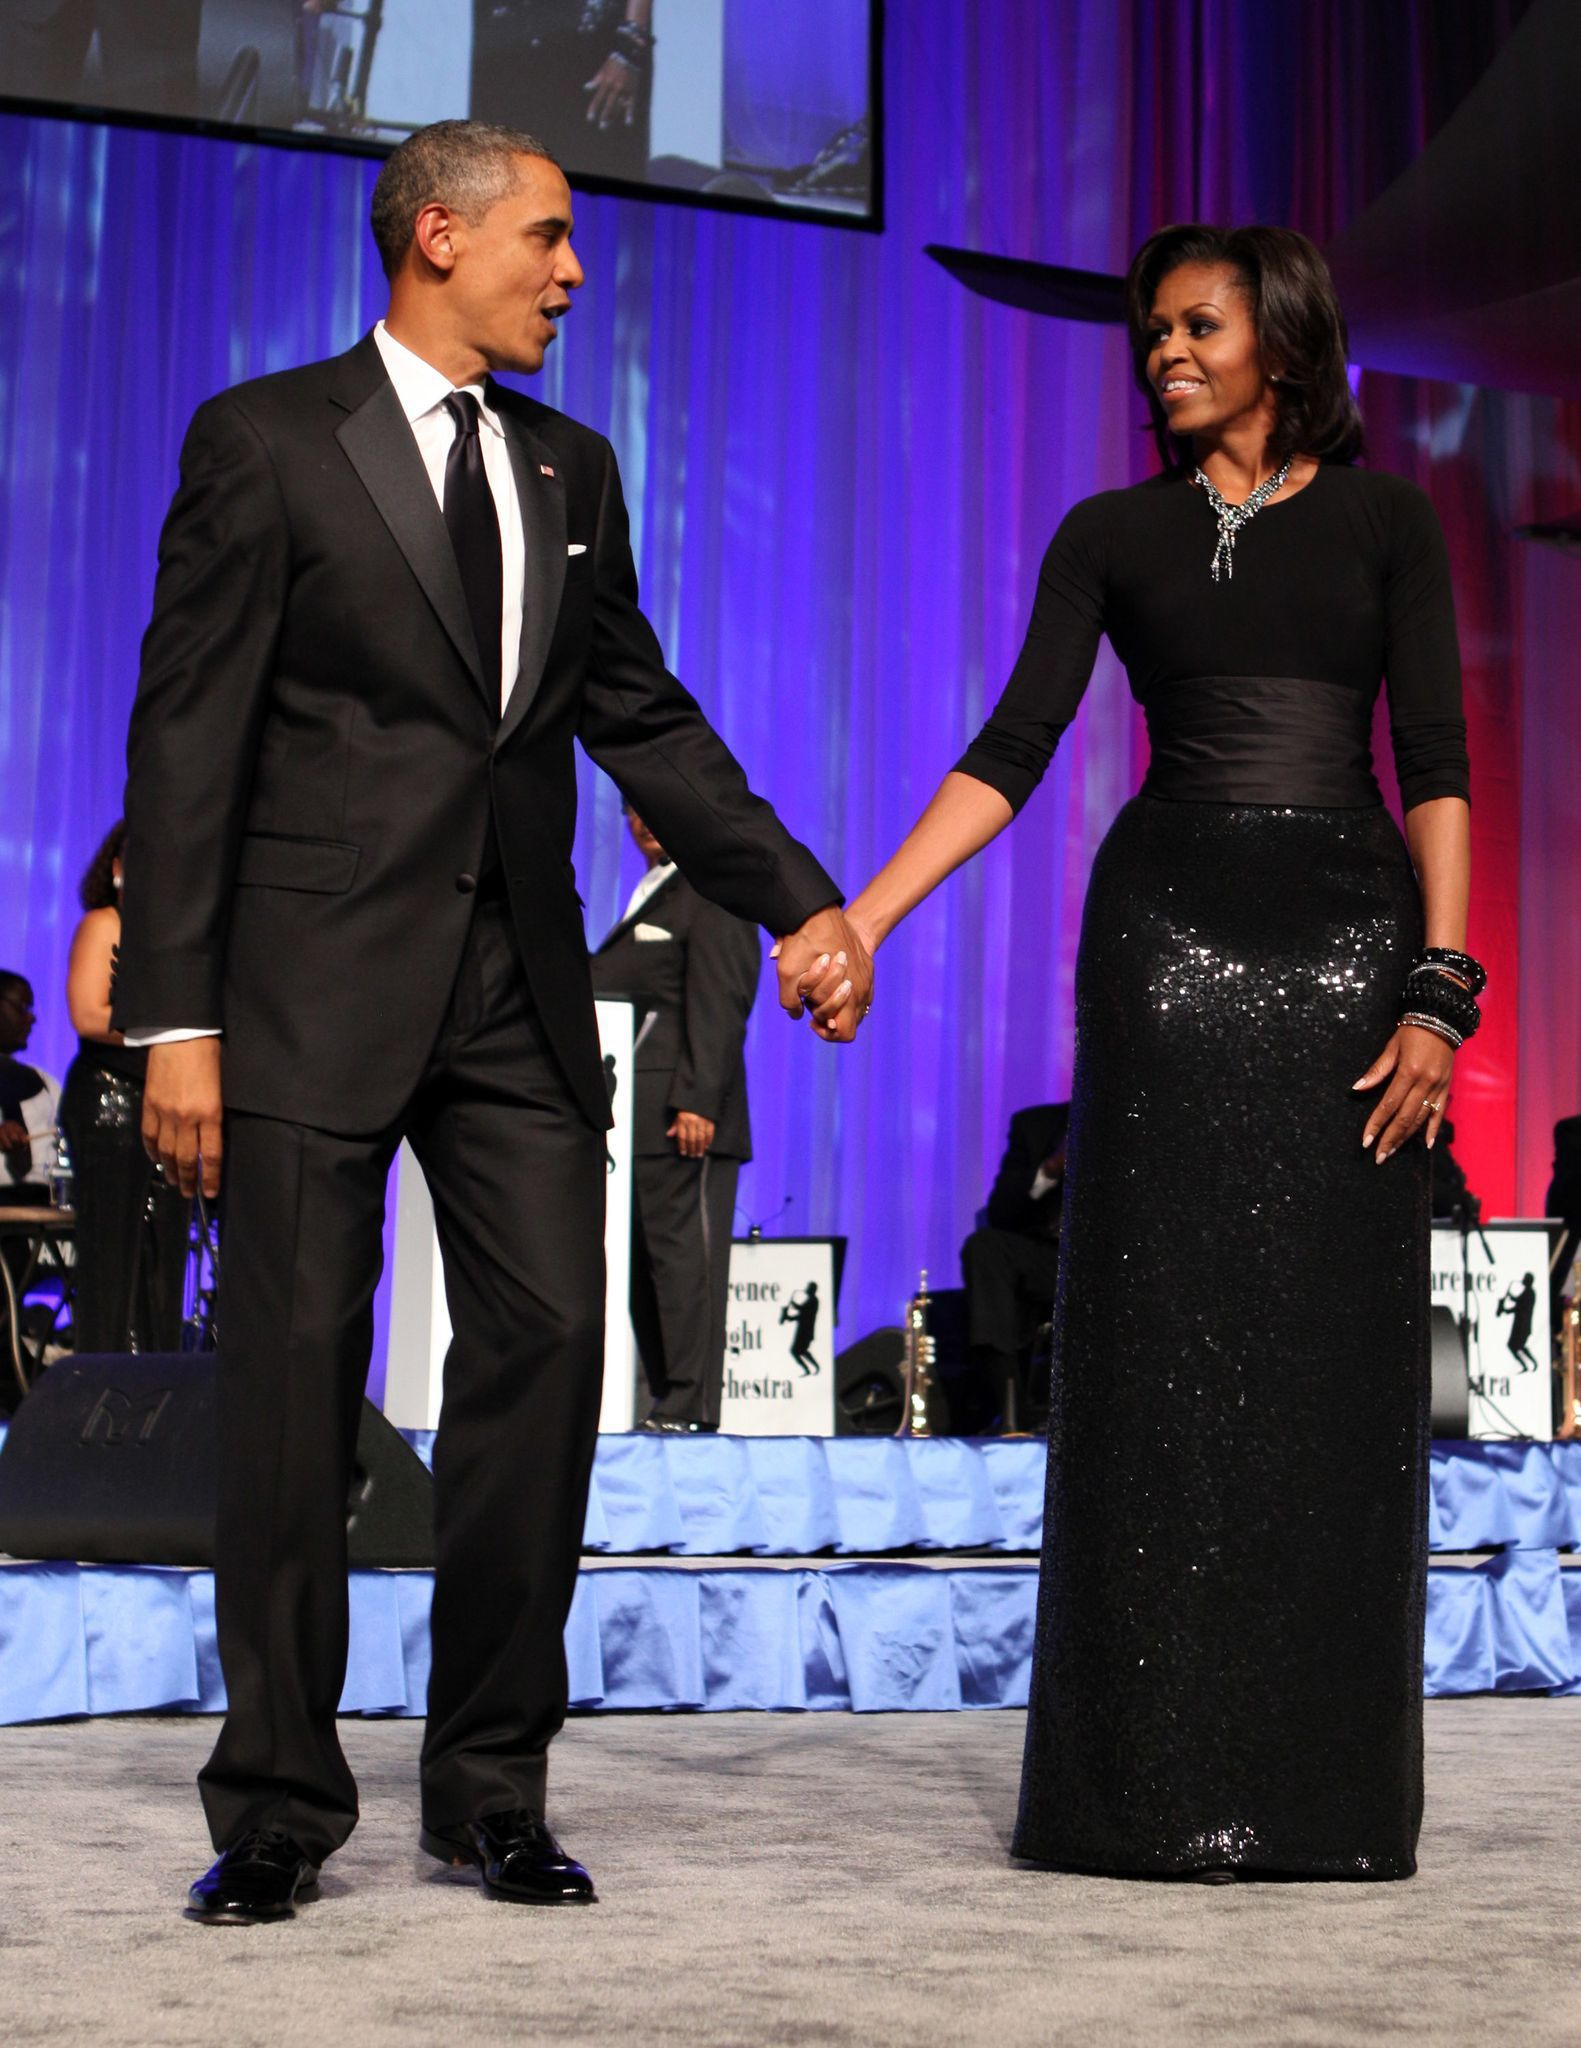 Les 40 plus beaux looks de michelle obama premi re dame plus